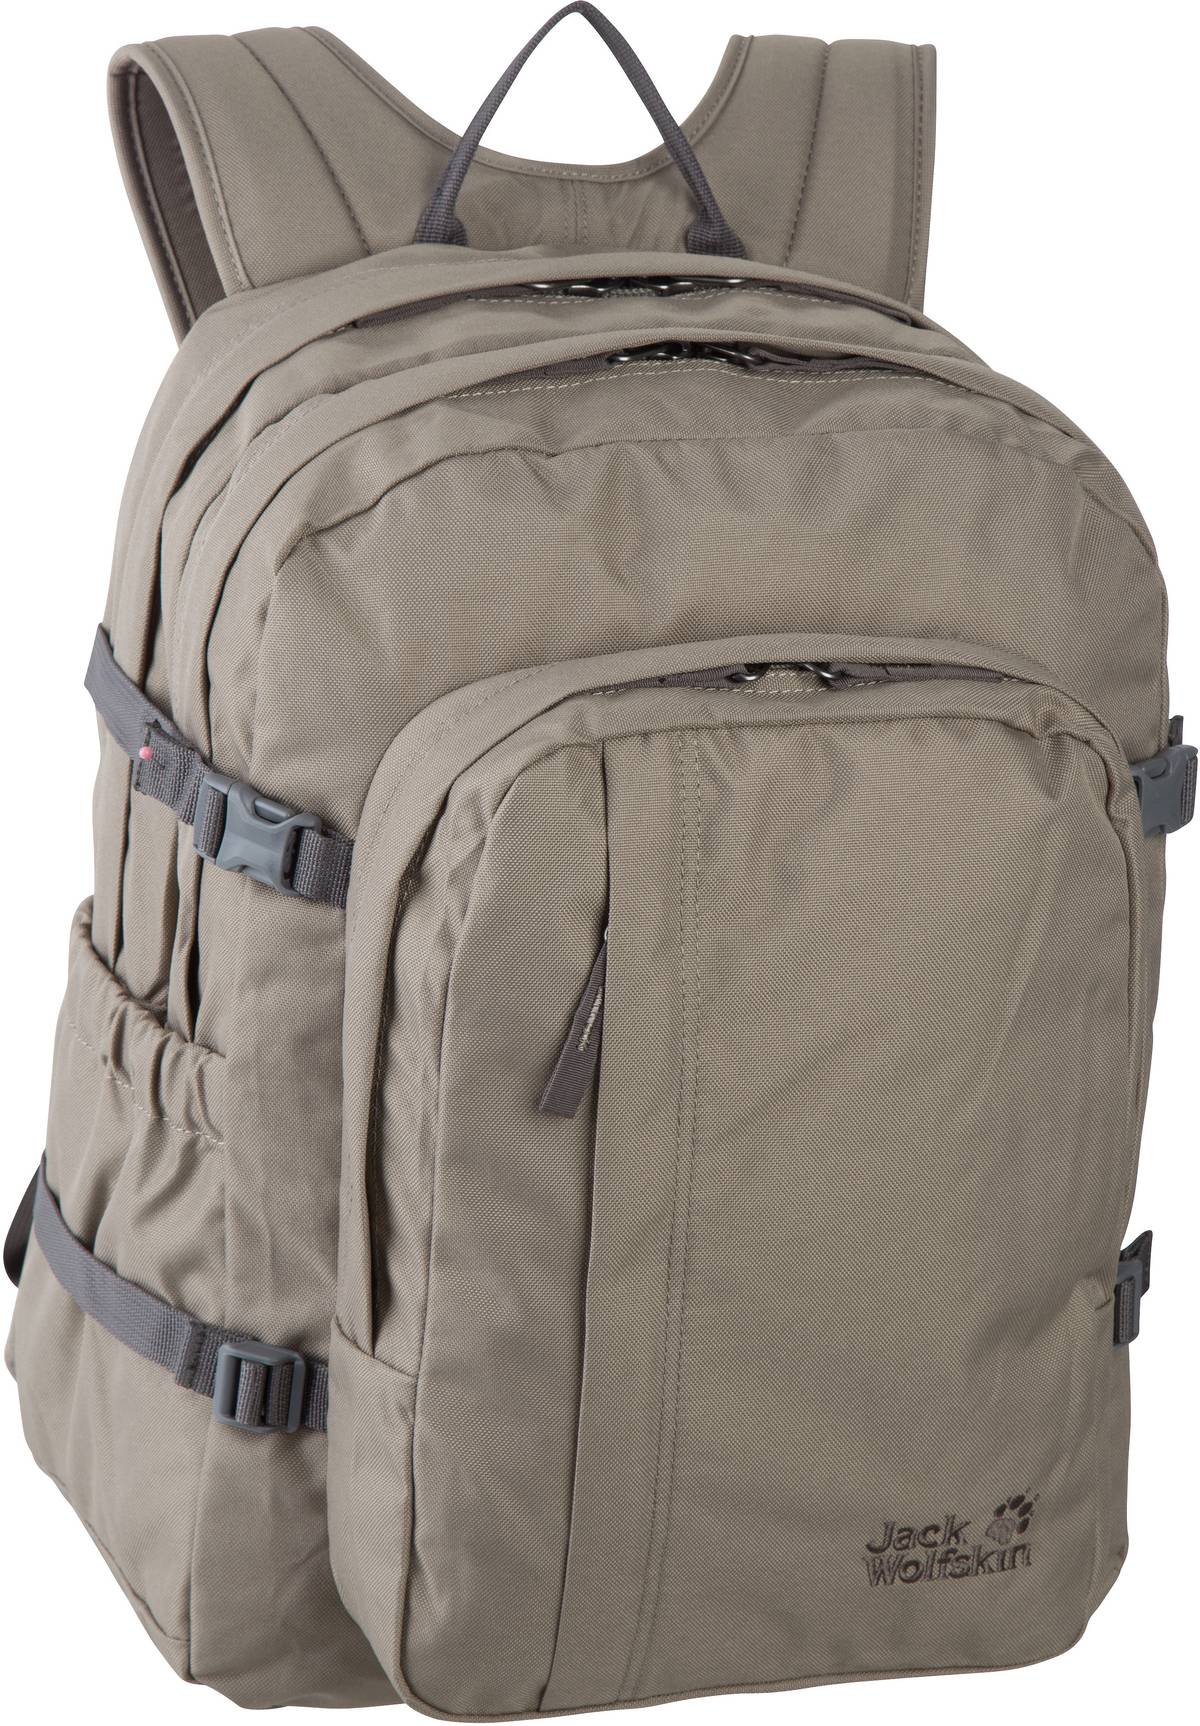 Rucksack / Daypack Berkeley NEW Clay (30 Liter)